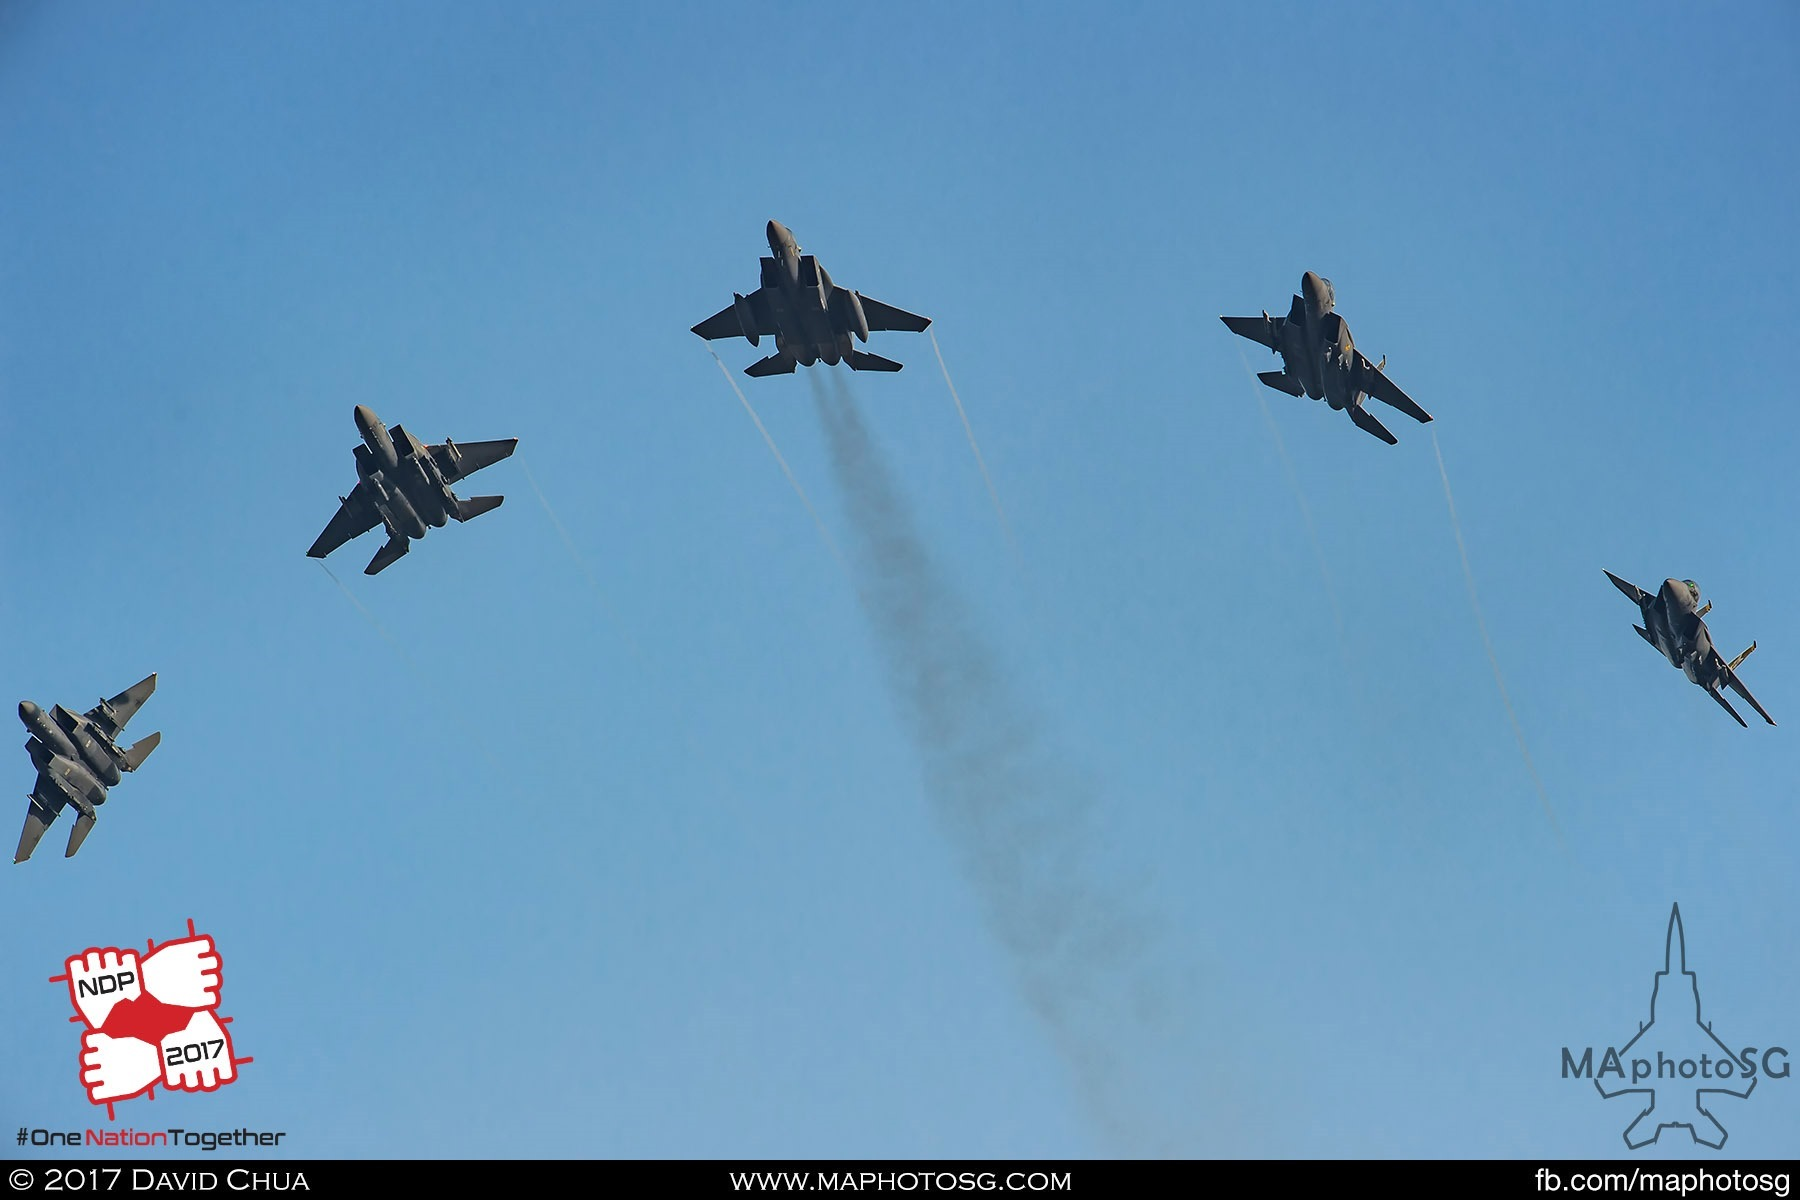 22. Five F-15SG Strike Eagles from 149 Squadron breaks as they performs the bomb burst maneuver.